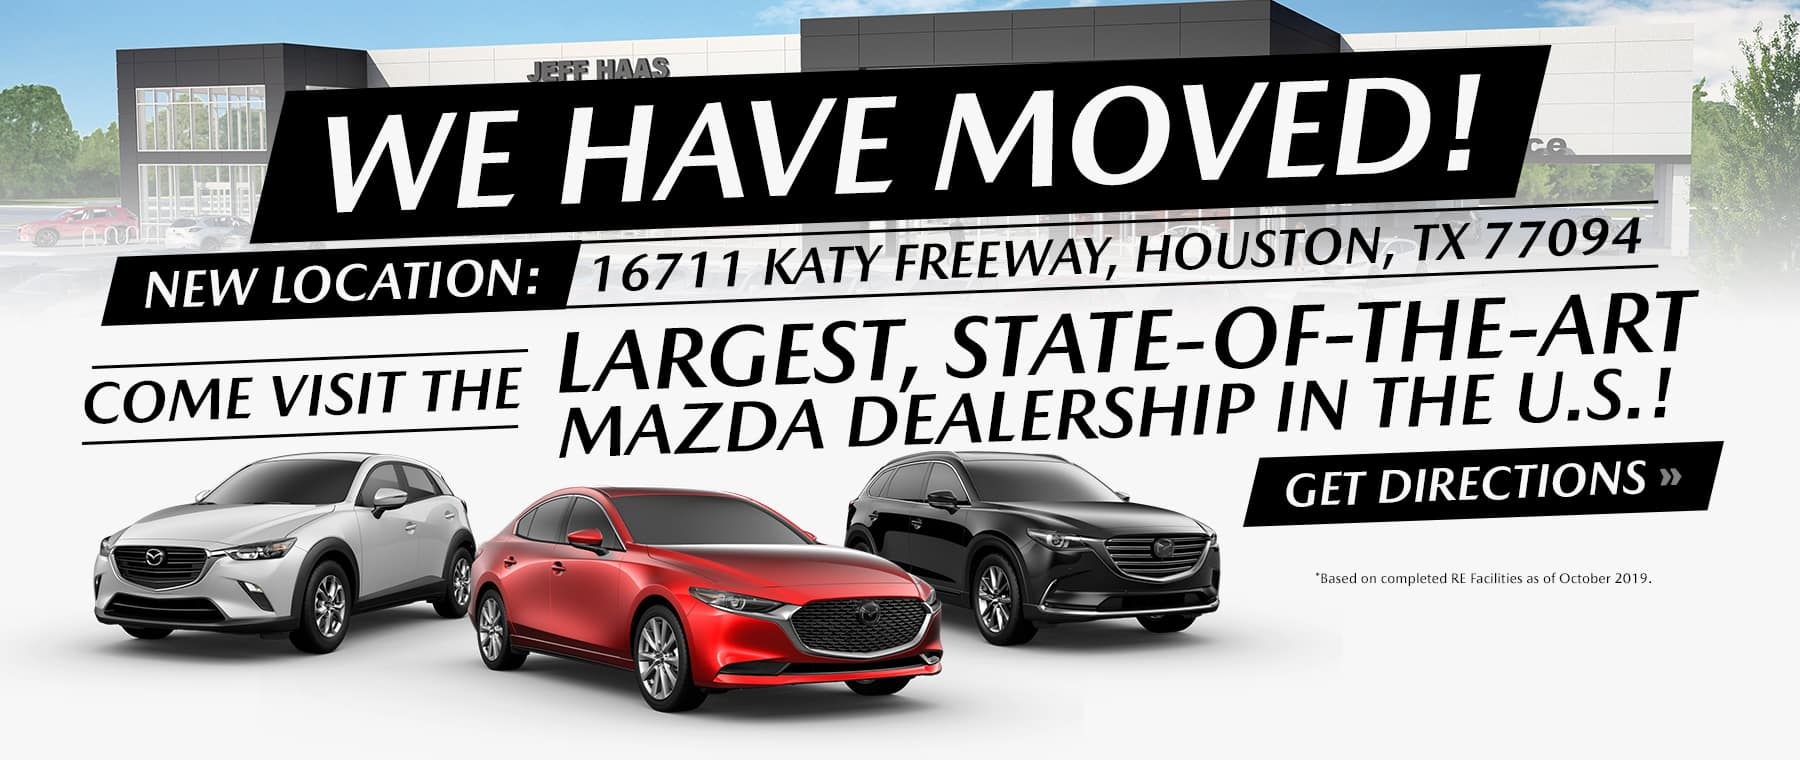 We've Moved to 16711 Katy Freeway Houston TX